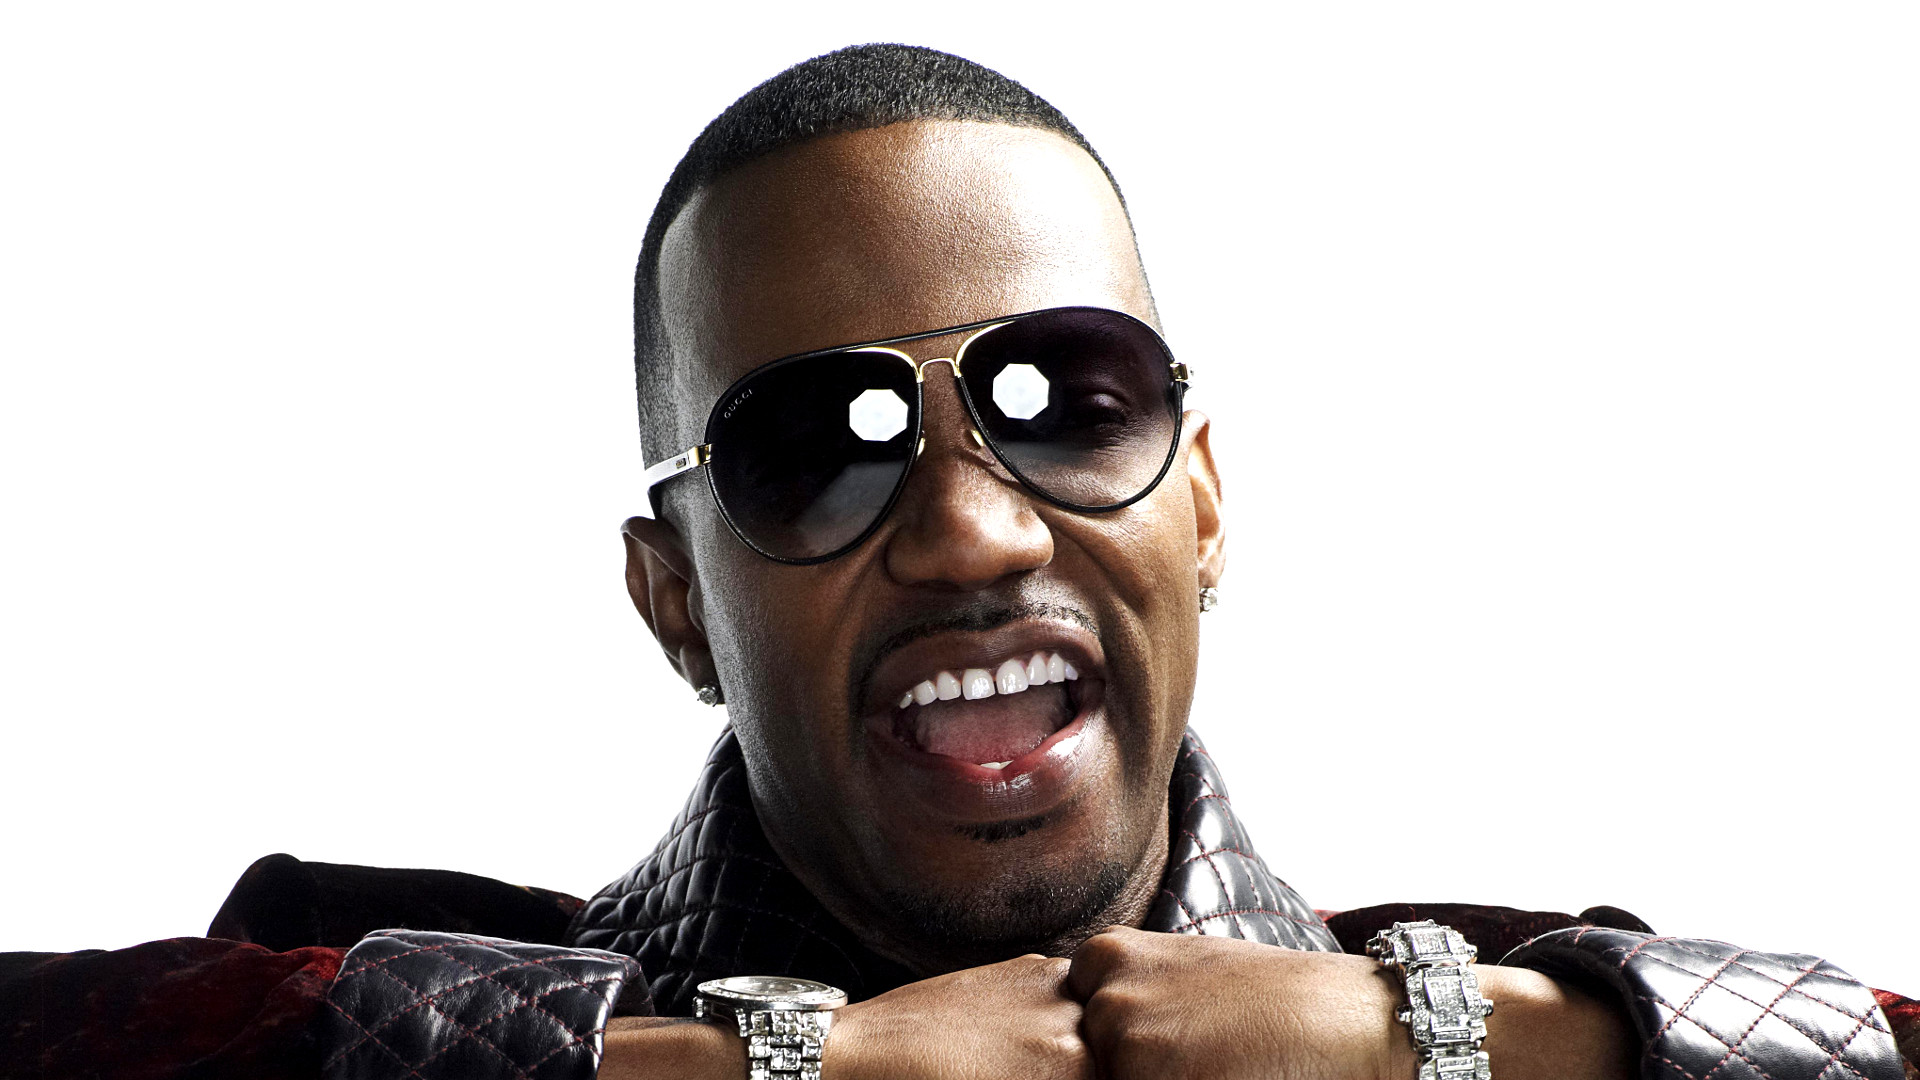 juicy j desktop hd wallpaper 66404